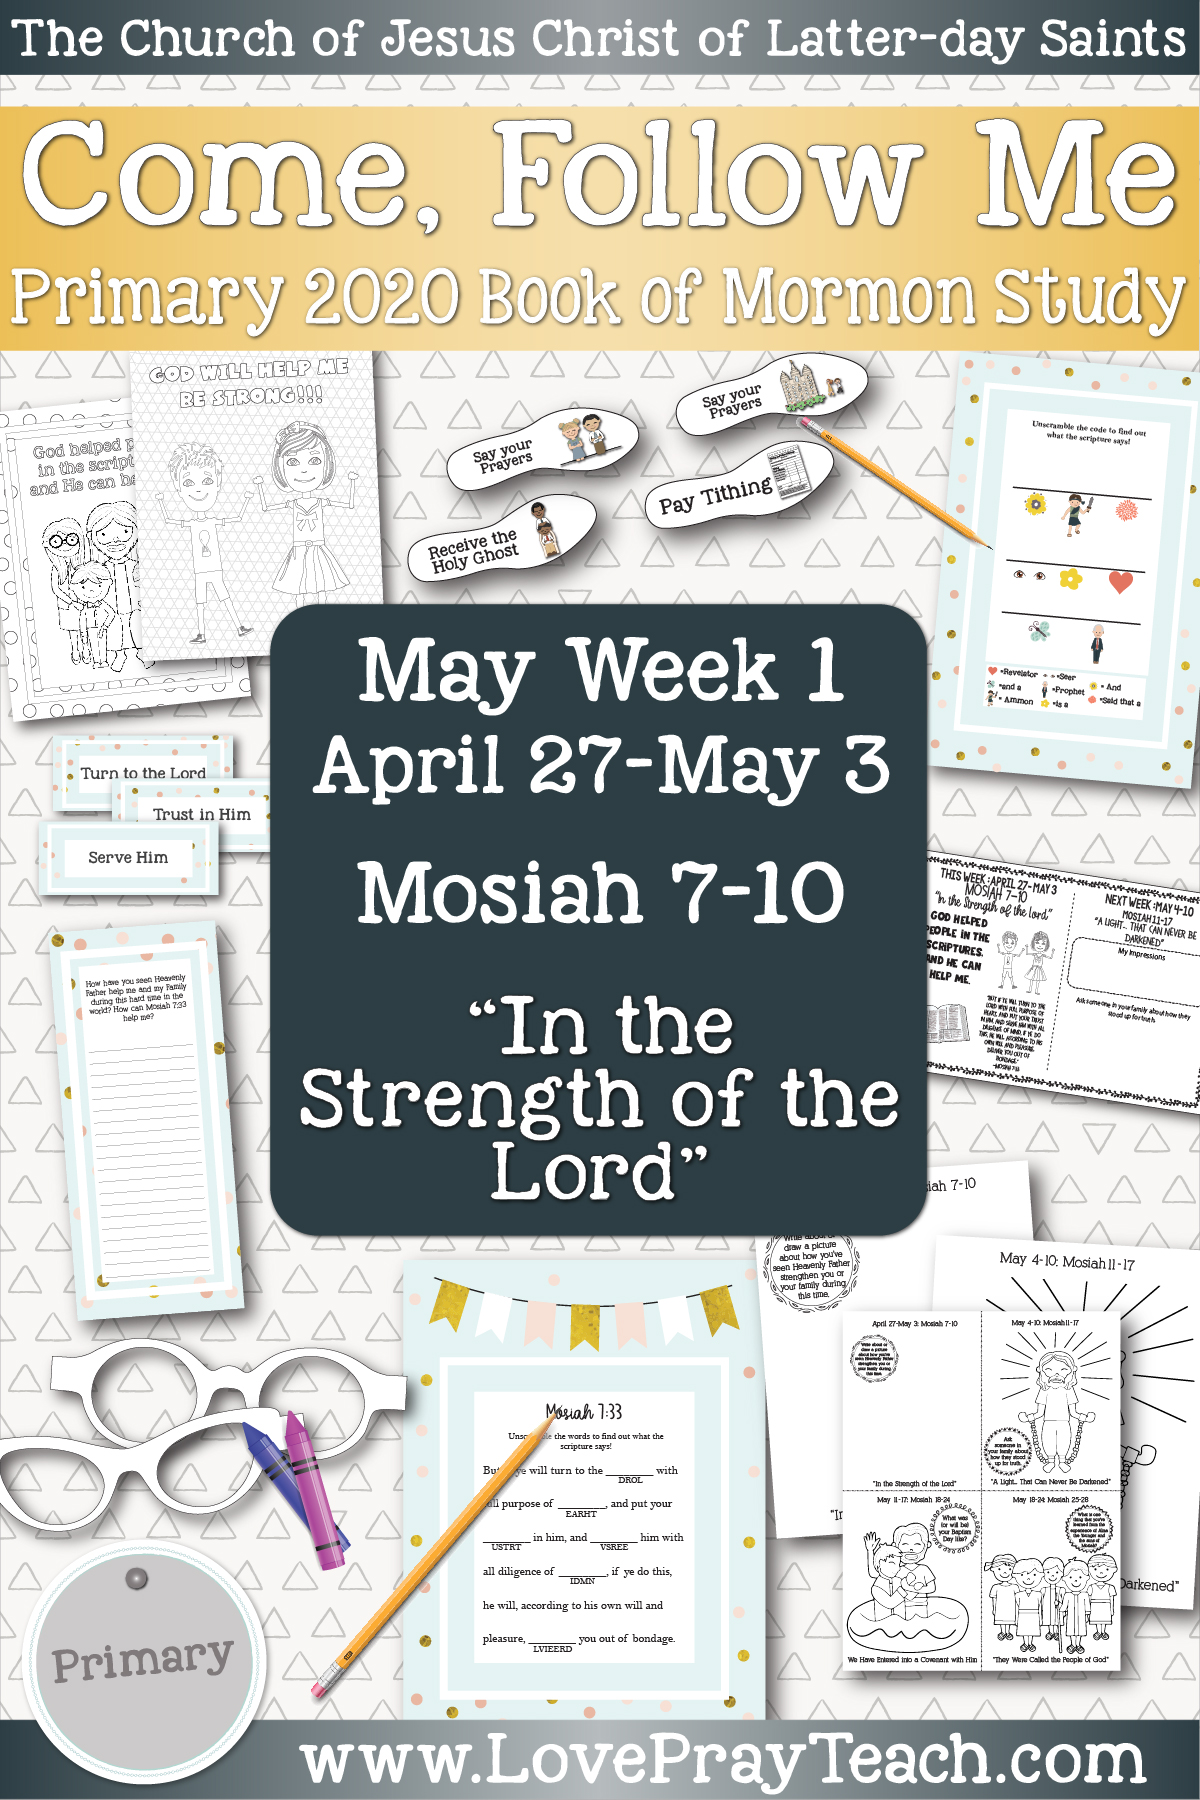 """Come, Follow Me for Primary May Week 1: April 27-May 3 Mosiah 7-10 """"In the Strength of the Lord"""" www.LovePrayTeach.com"""